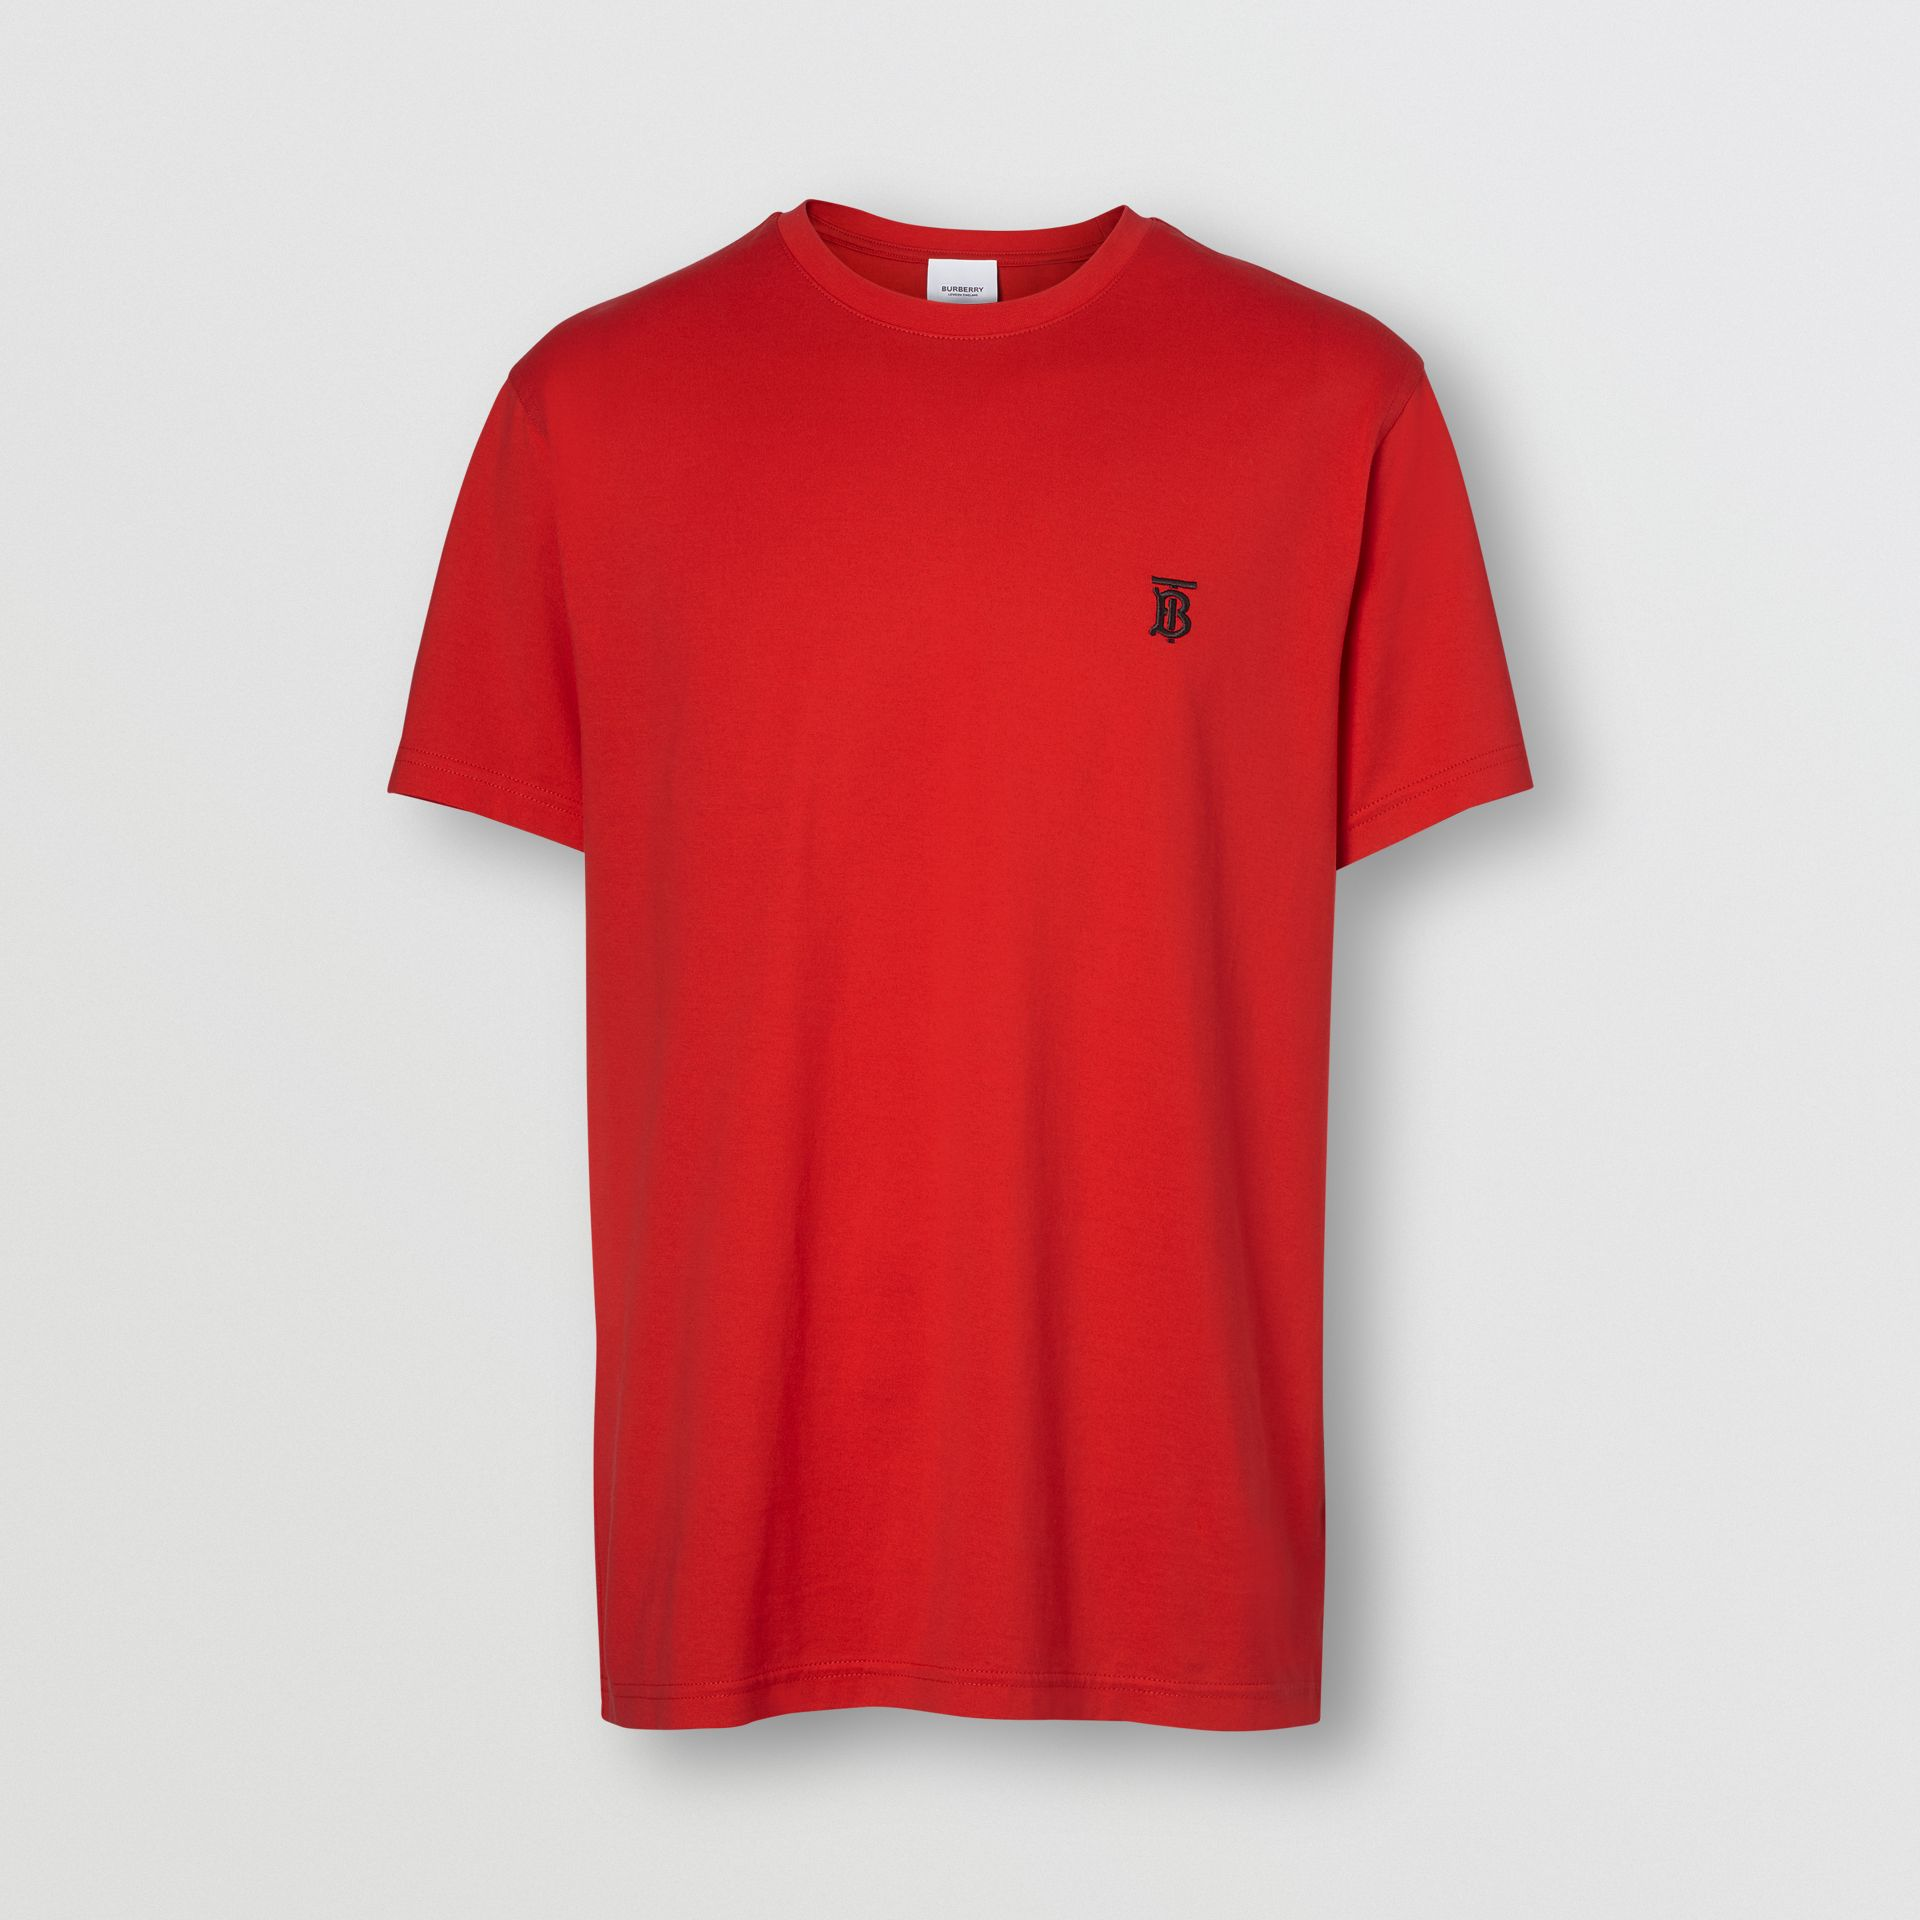 Monogram Motif Cotton T-shirt in Bright Red - Men | Burberry United Kingdom - gallery image 3